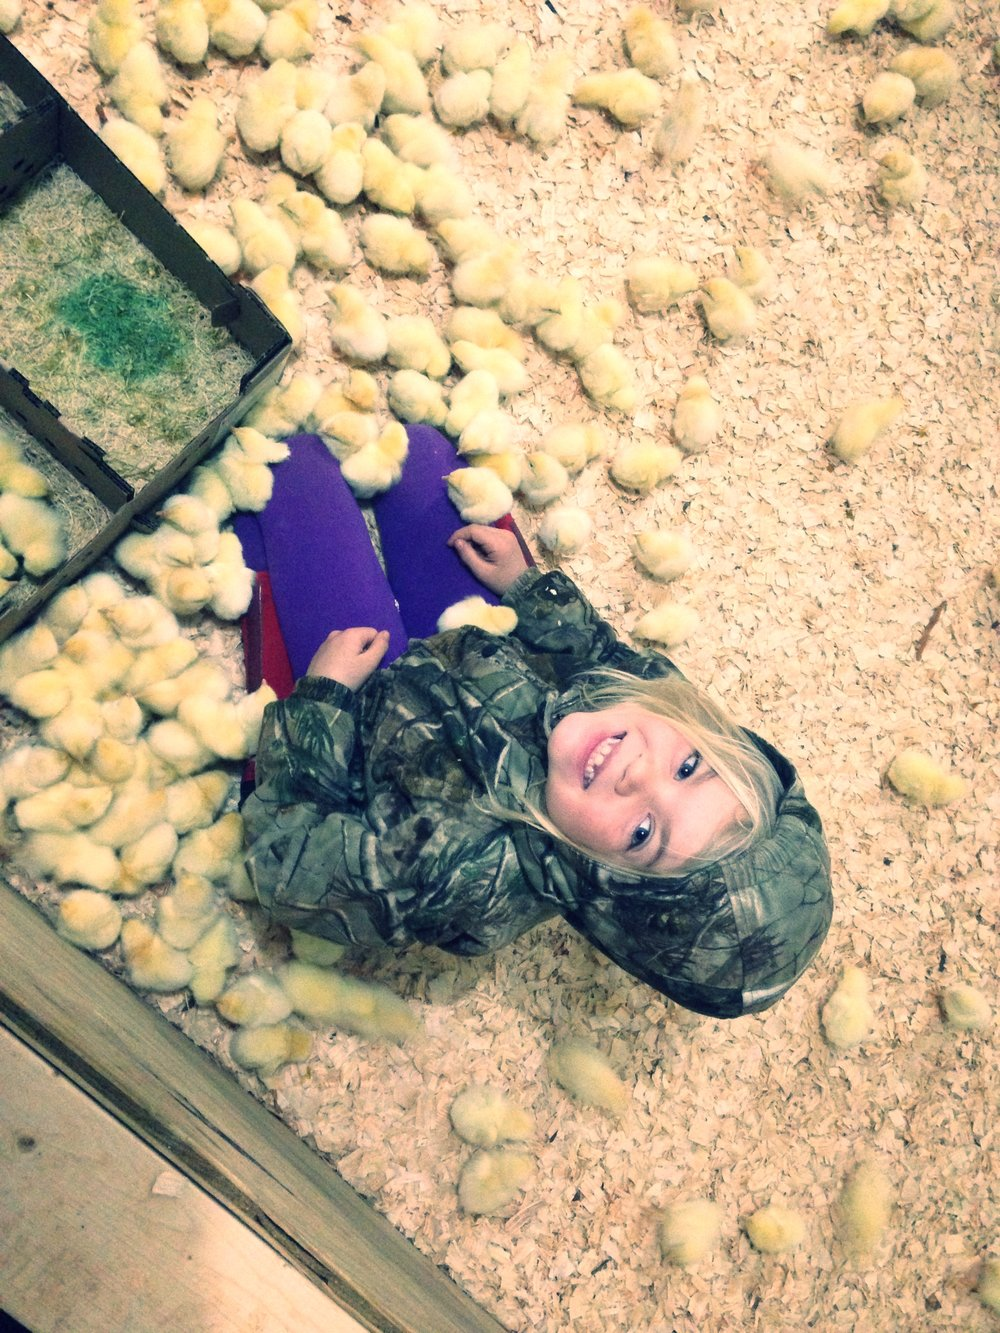 Megan unloading the chicks into the brooder.